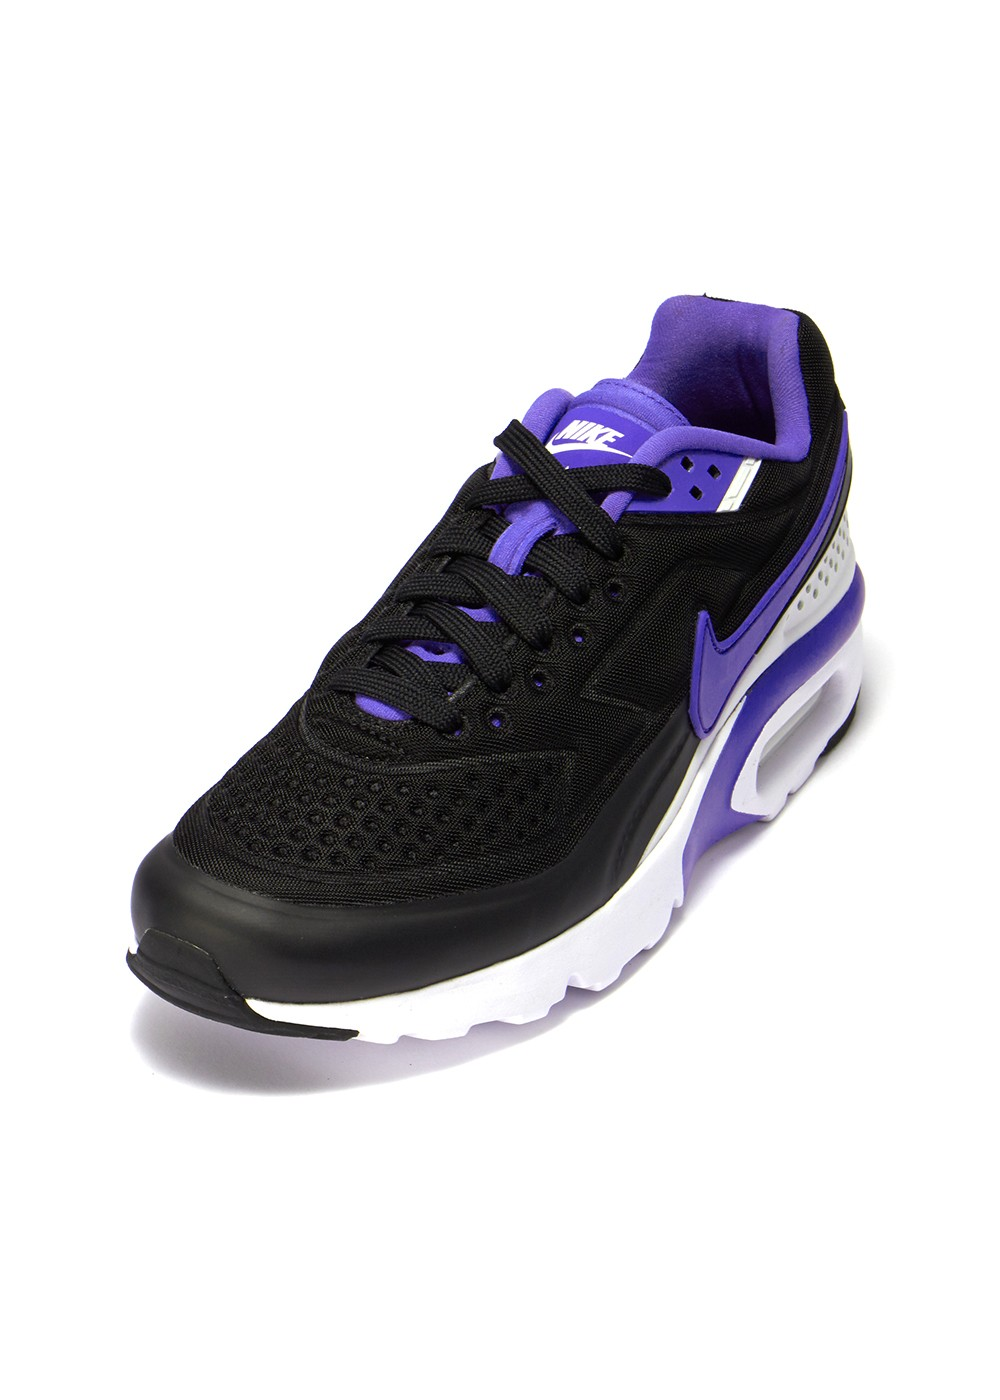 【NIKE】AIR MAX BW ULTRA SE 844967-051|BLACK|スニーカー|Styles